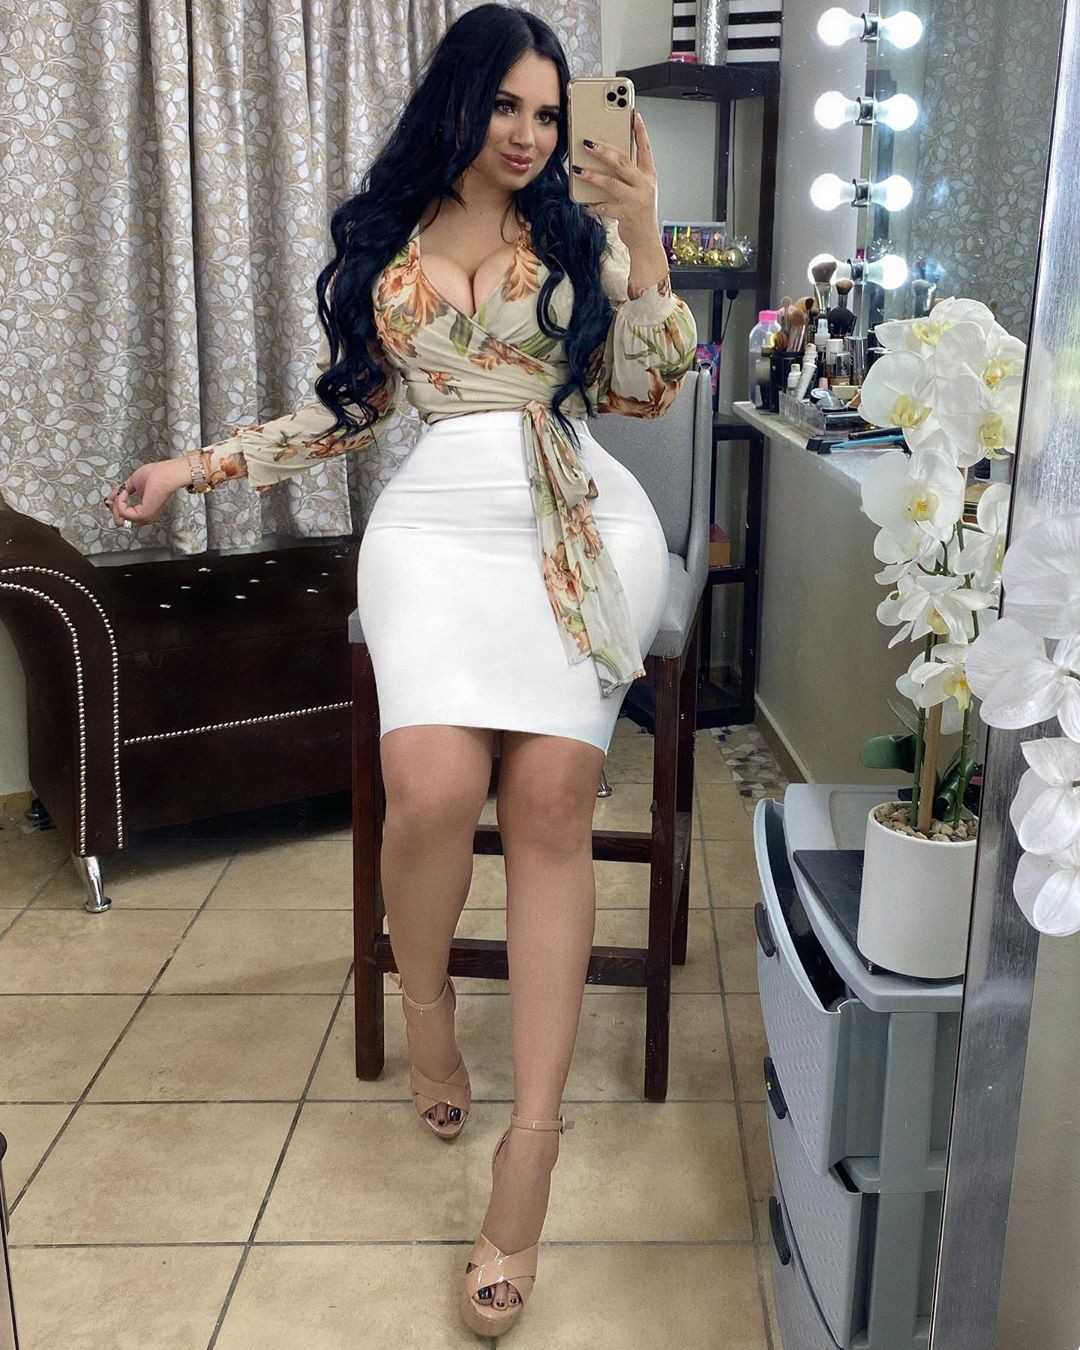 white outfit style with dress, hot girls thighs, legs picture